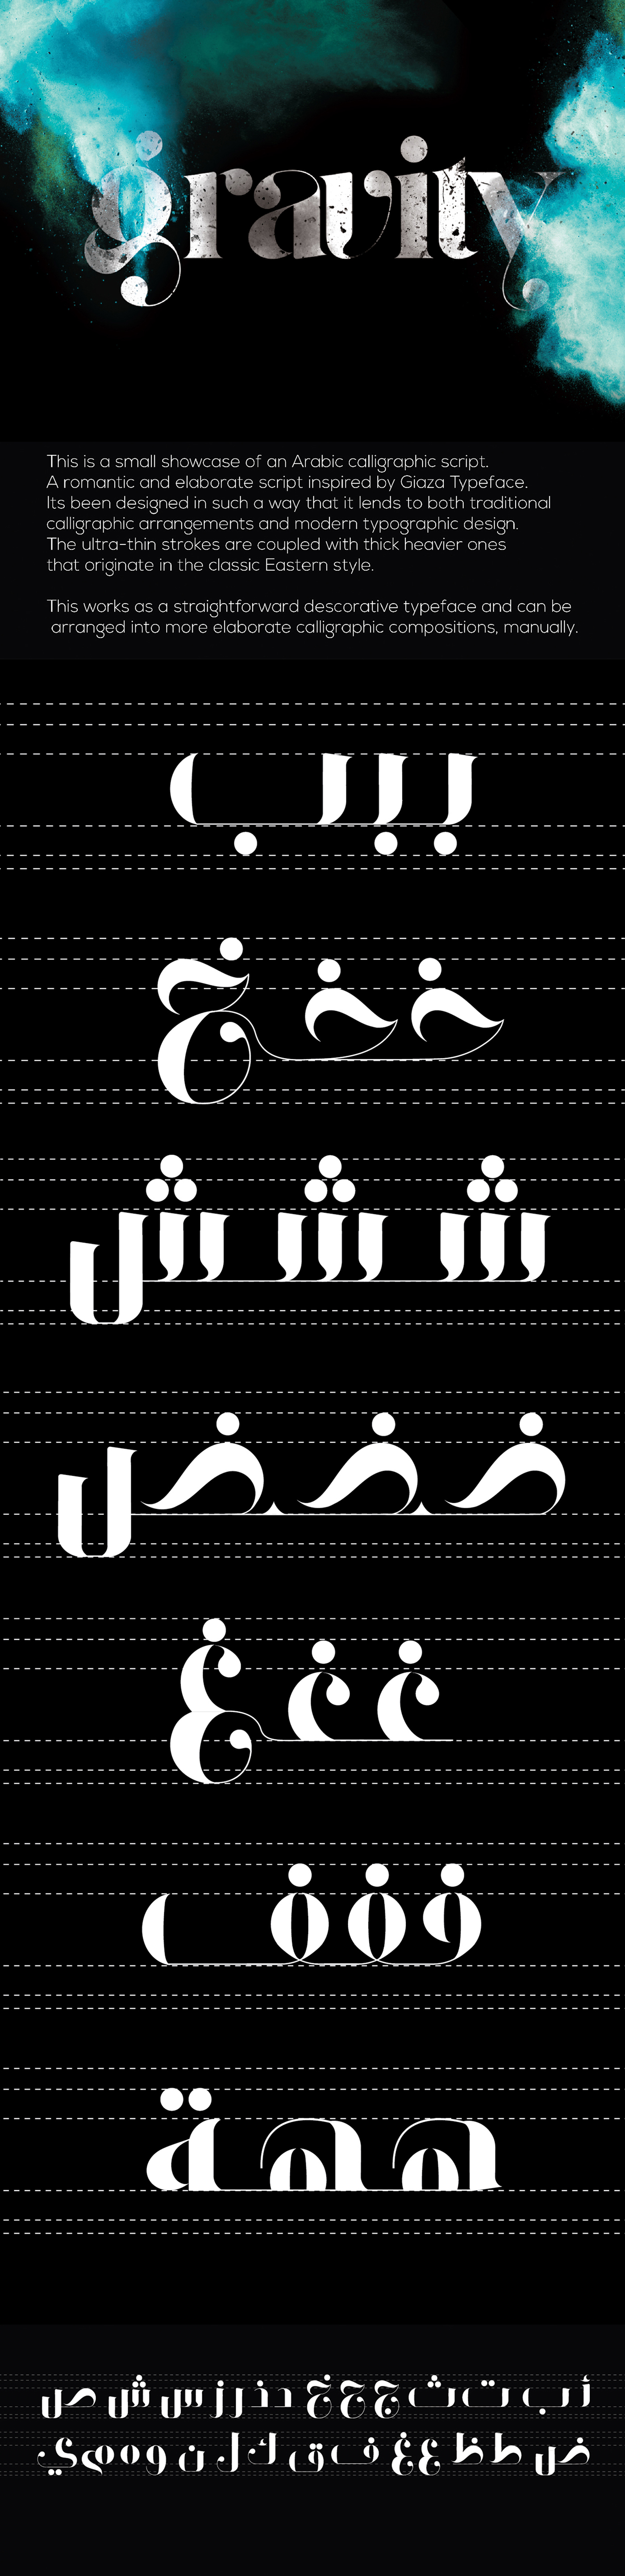 All rights reserved for aly bassam script gravity